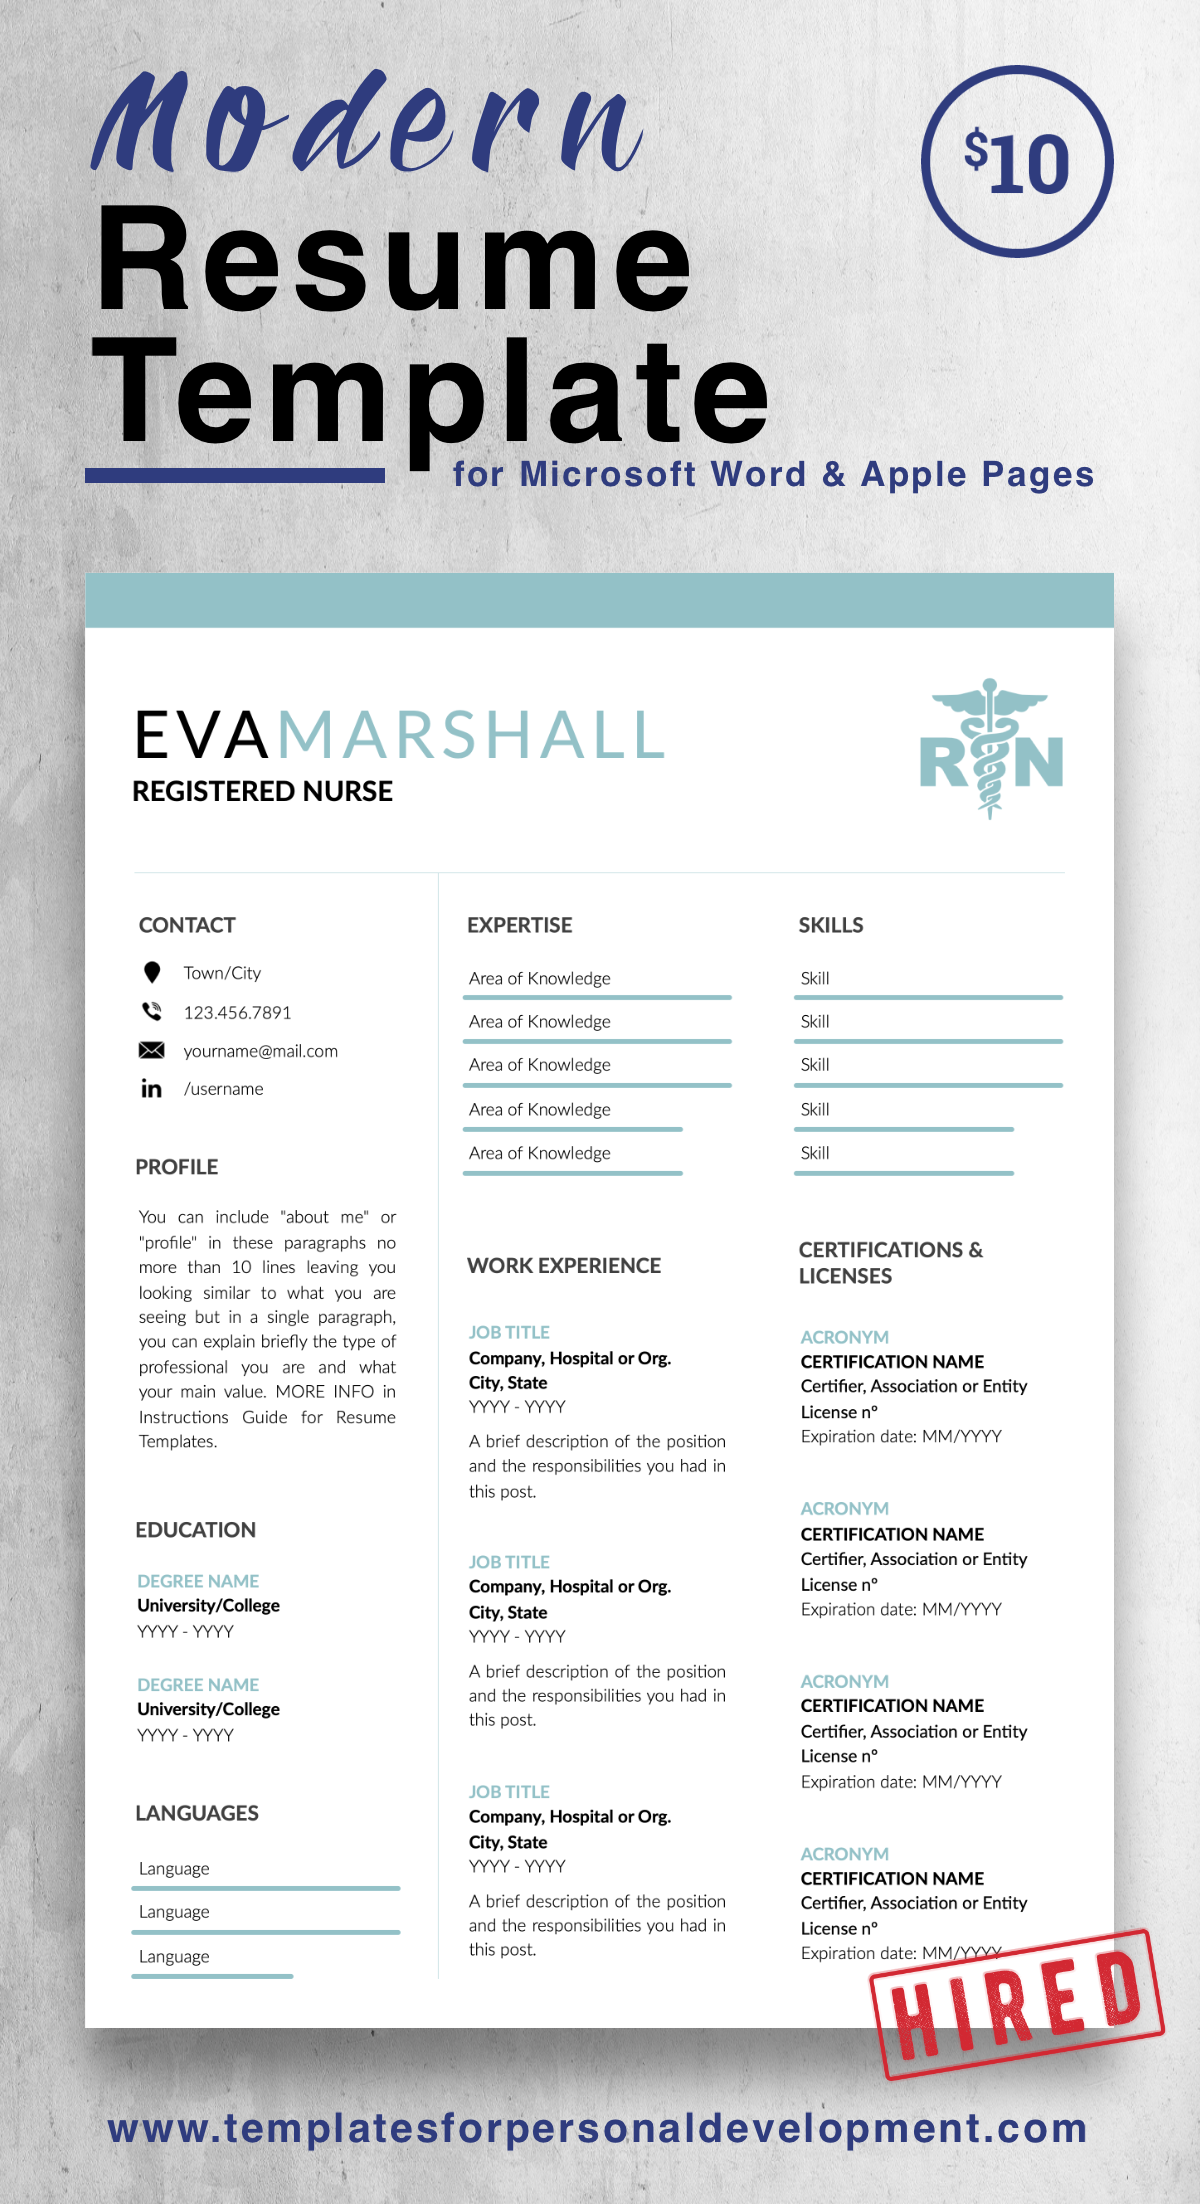 Eva Marshall Nurse Resume Cv Template For Word Pages Us Letter A4 Files 1 2 3 Page Resume Version Cover Letter References Cover Letter With Nursing Resume Template Resume Template Resume